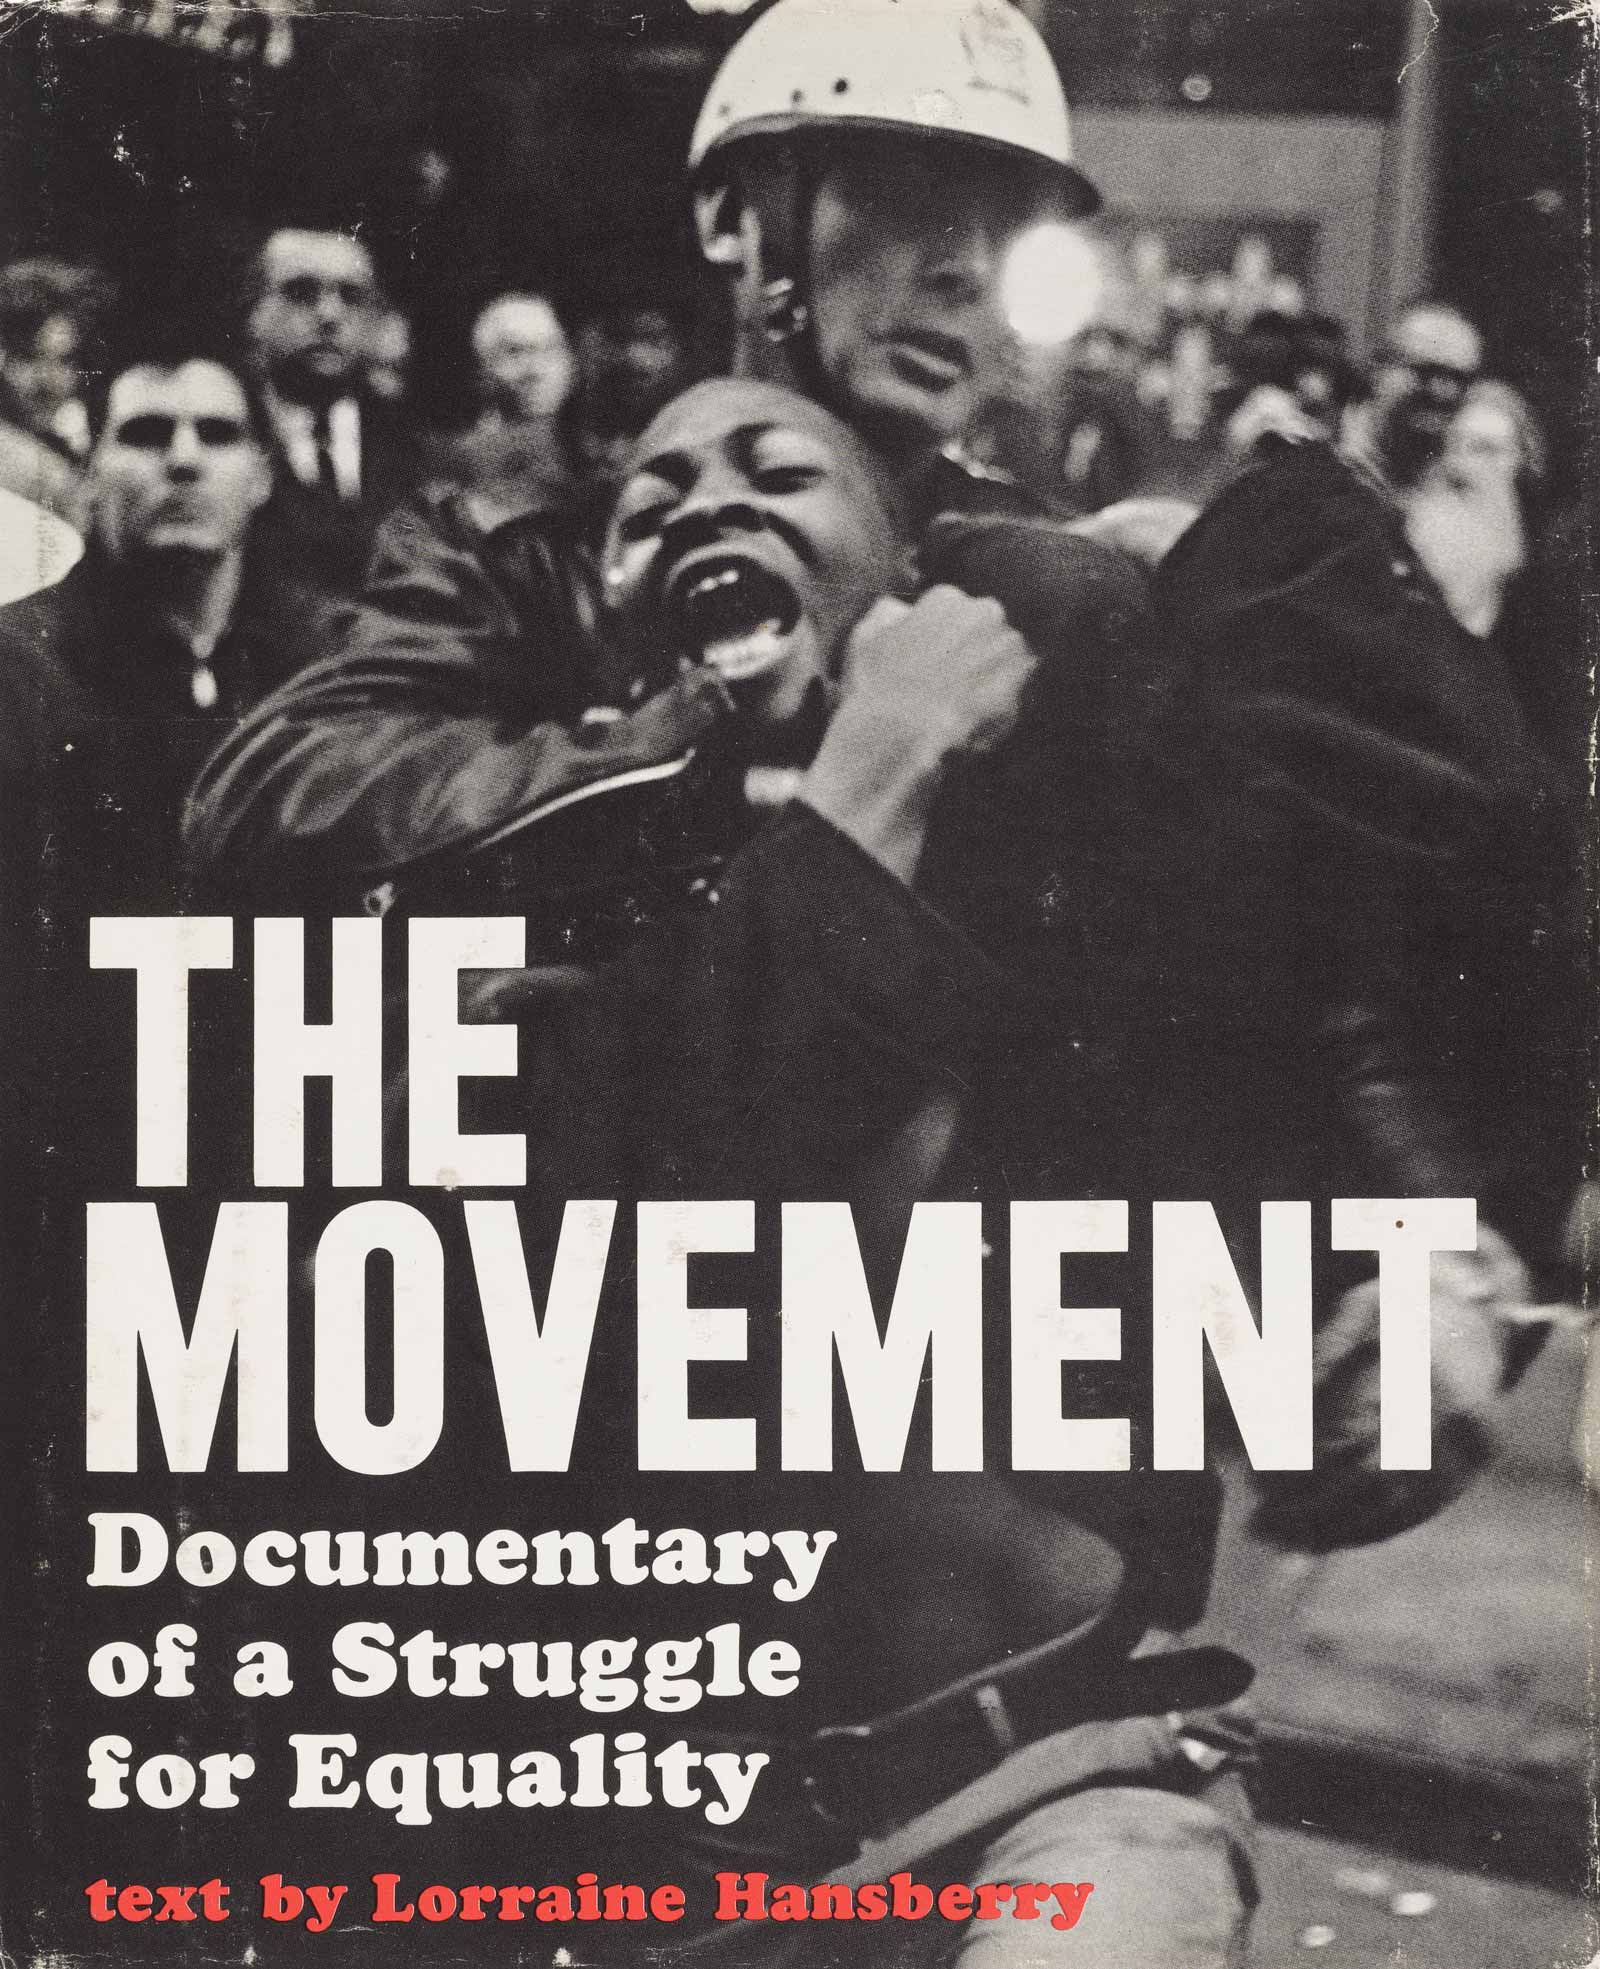 Danny Lyon/The Fine Arts Museums of San Francisco Cover of The Movement: Documentary of a Struggle for Equality, with photographs by Danny Lyon and a text by Lorraine Hansberry, Simon & Schuster, 1964